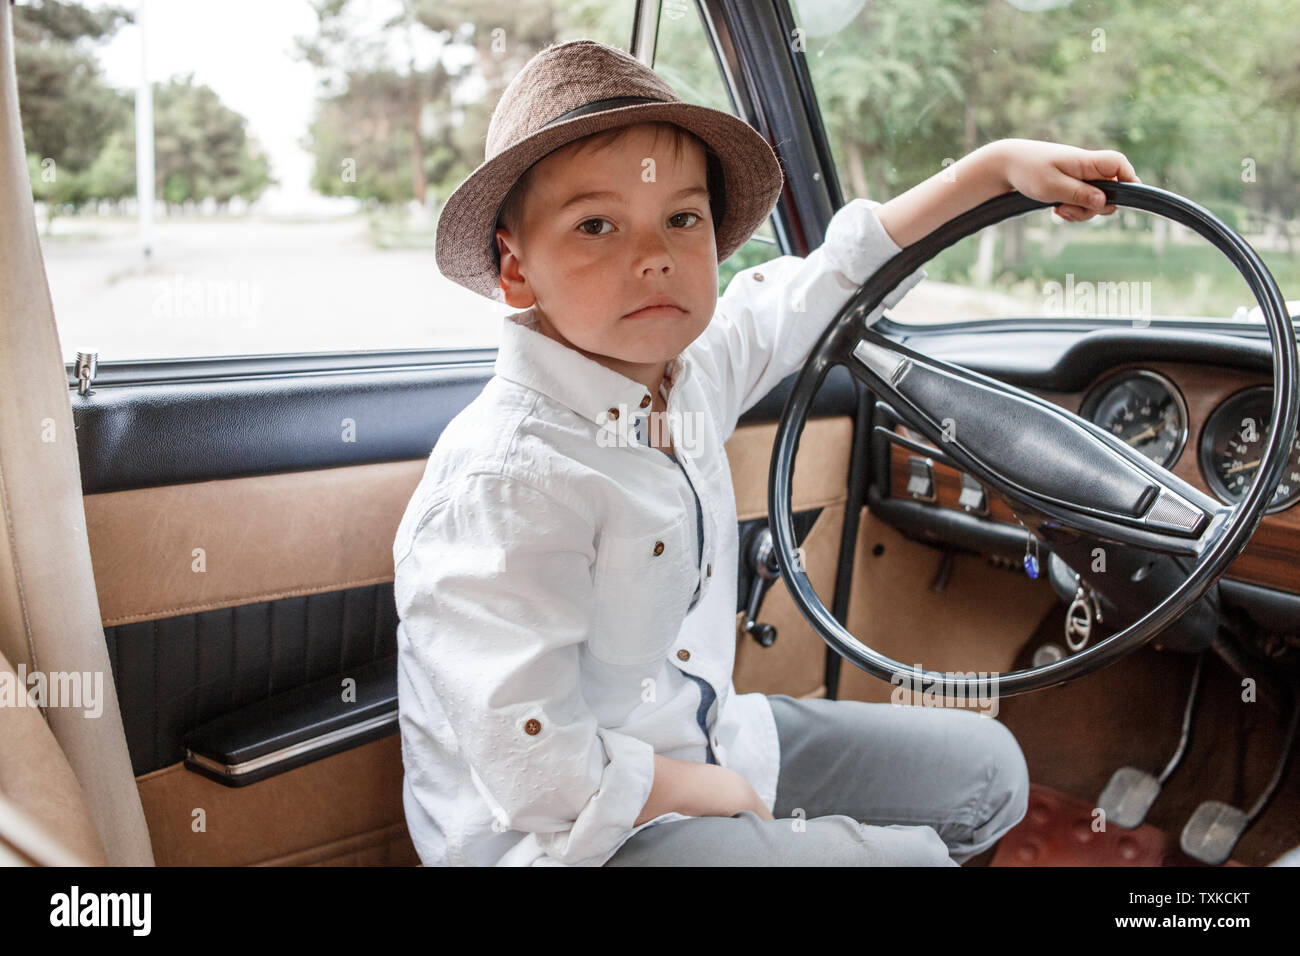 Caucasian little boy in vintage clothes sitting inside a retro car Stock Photo